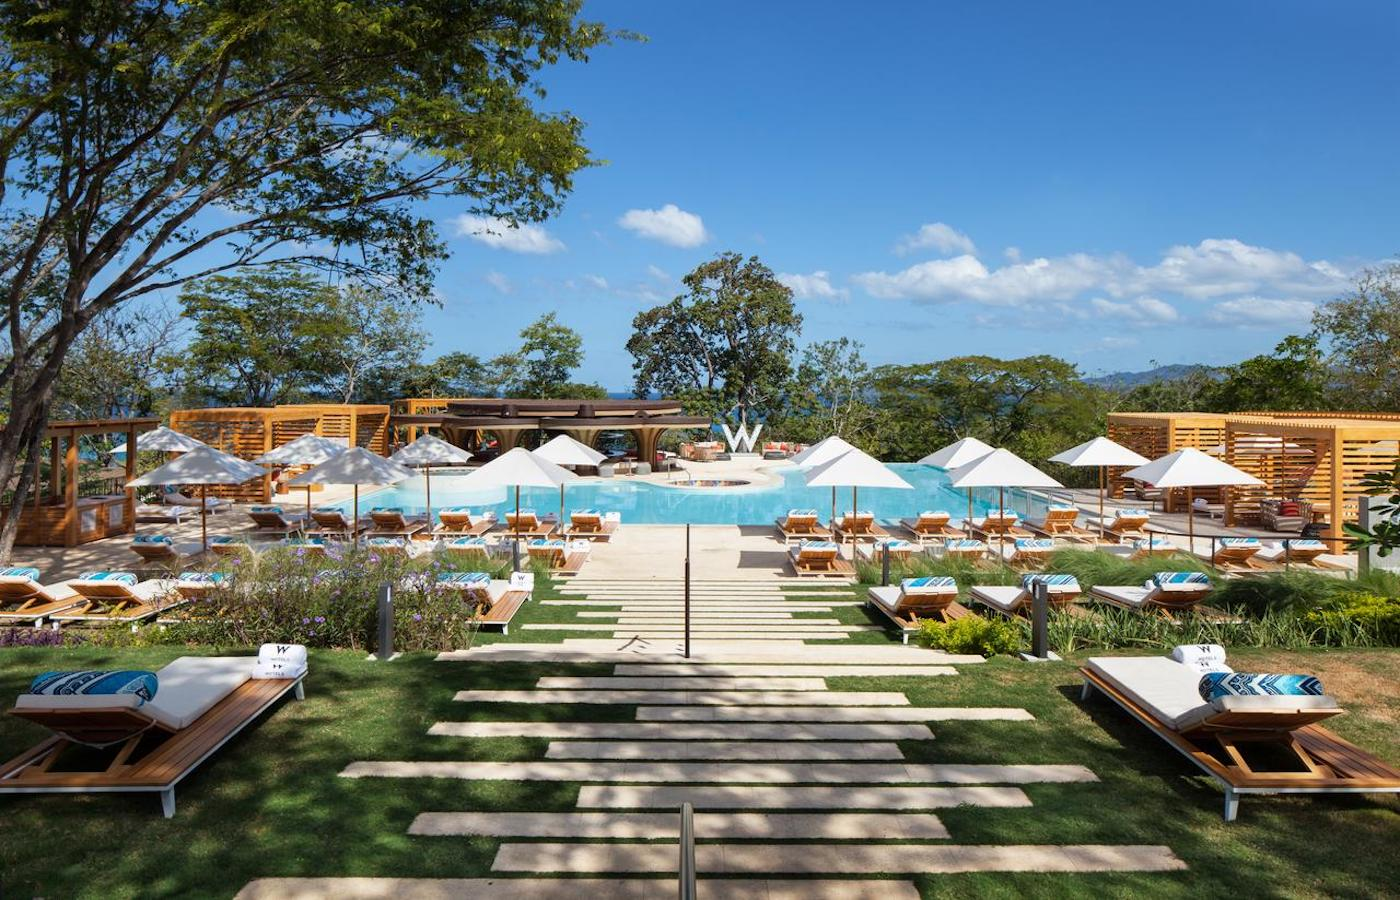 The fun and fresh W hotel in Playa Conchal - Luxury holidays to Costa Rica